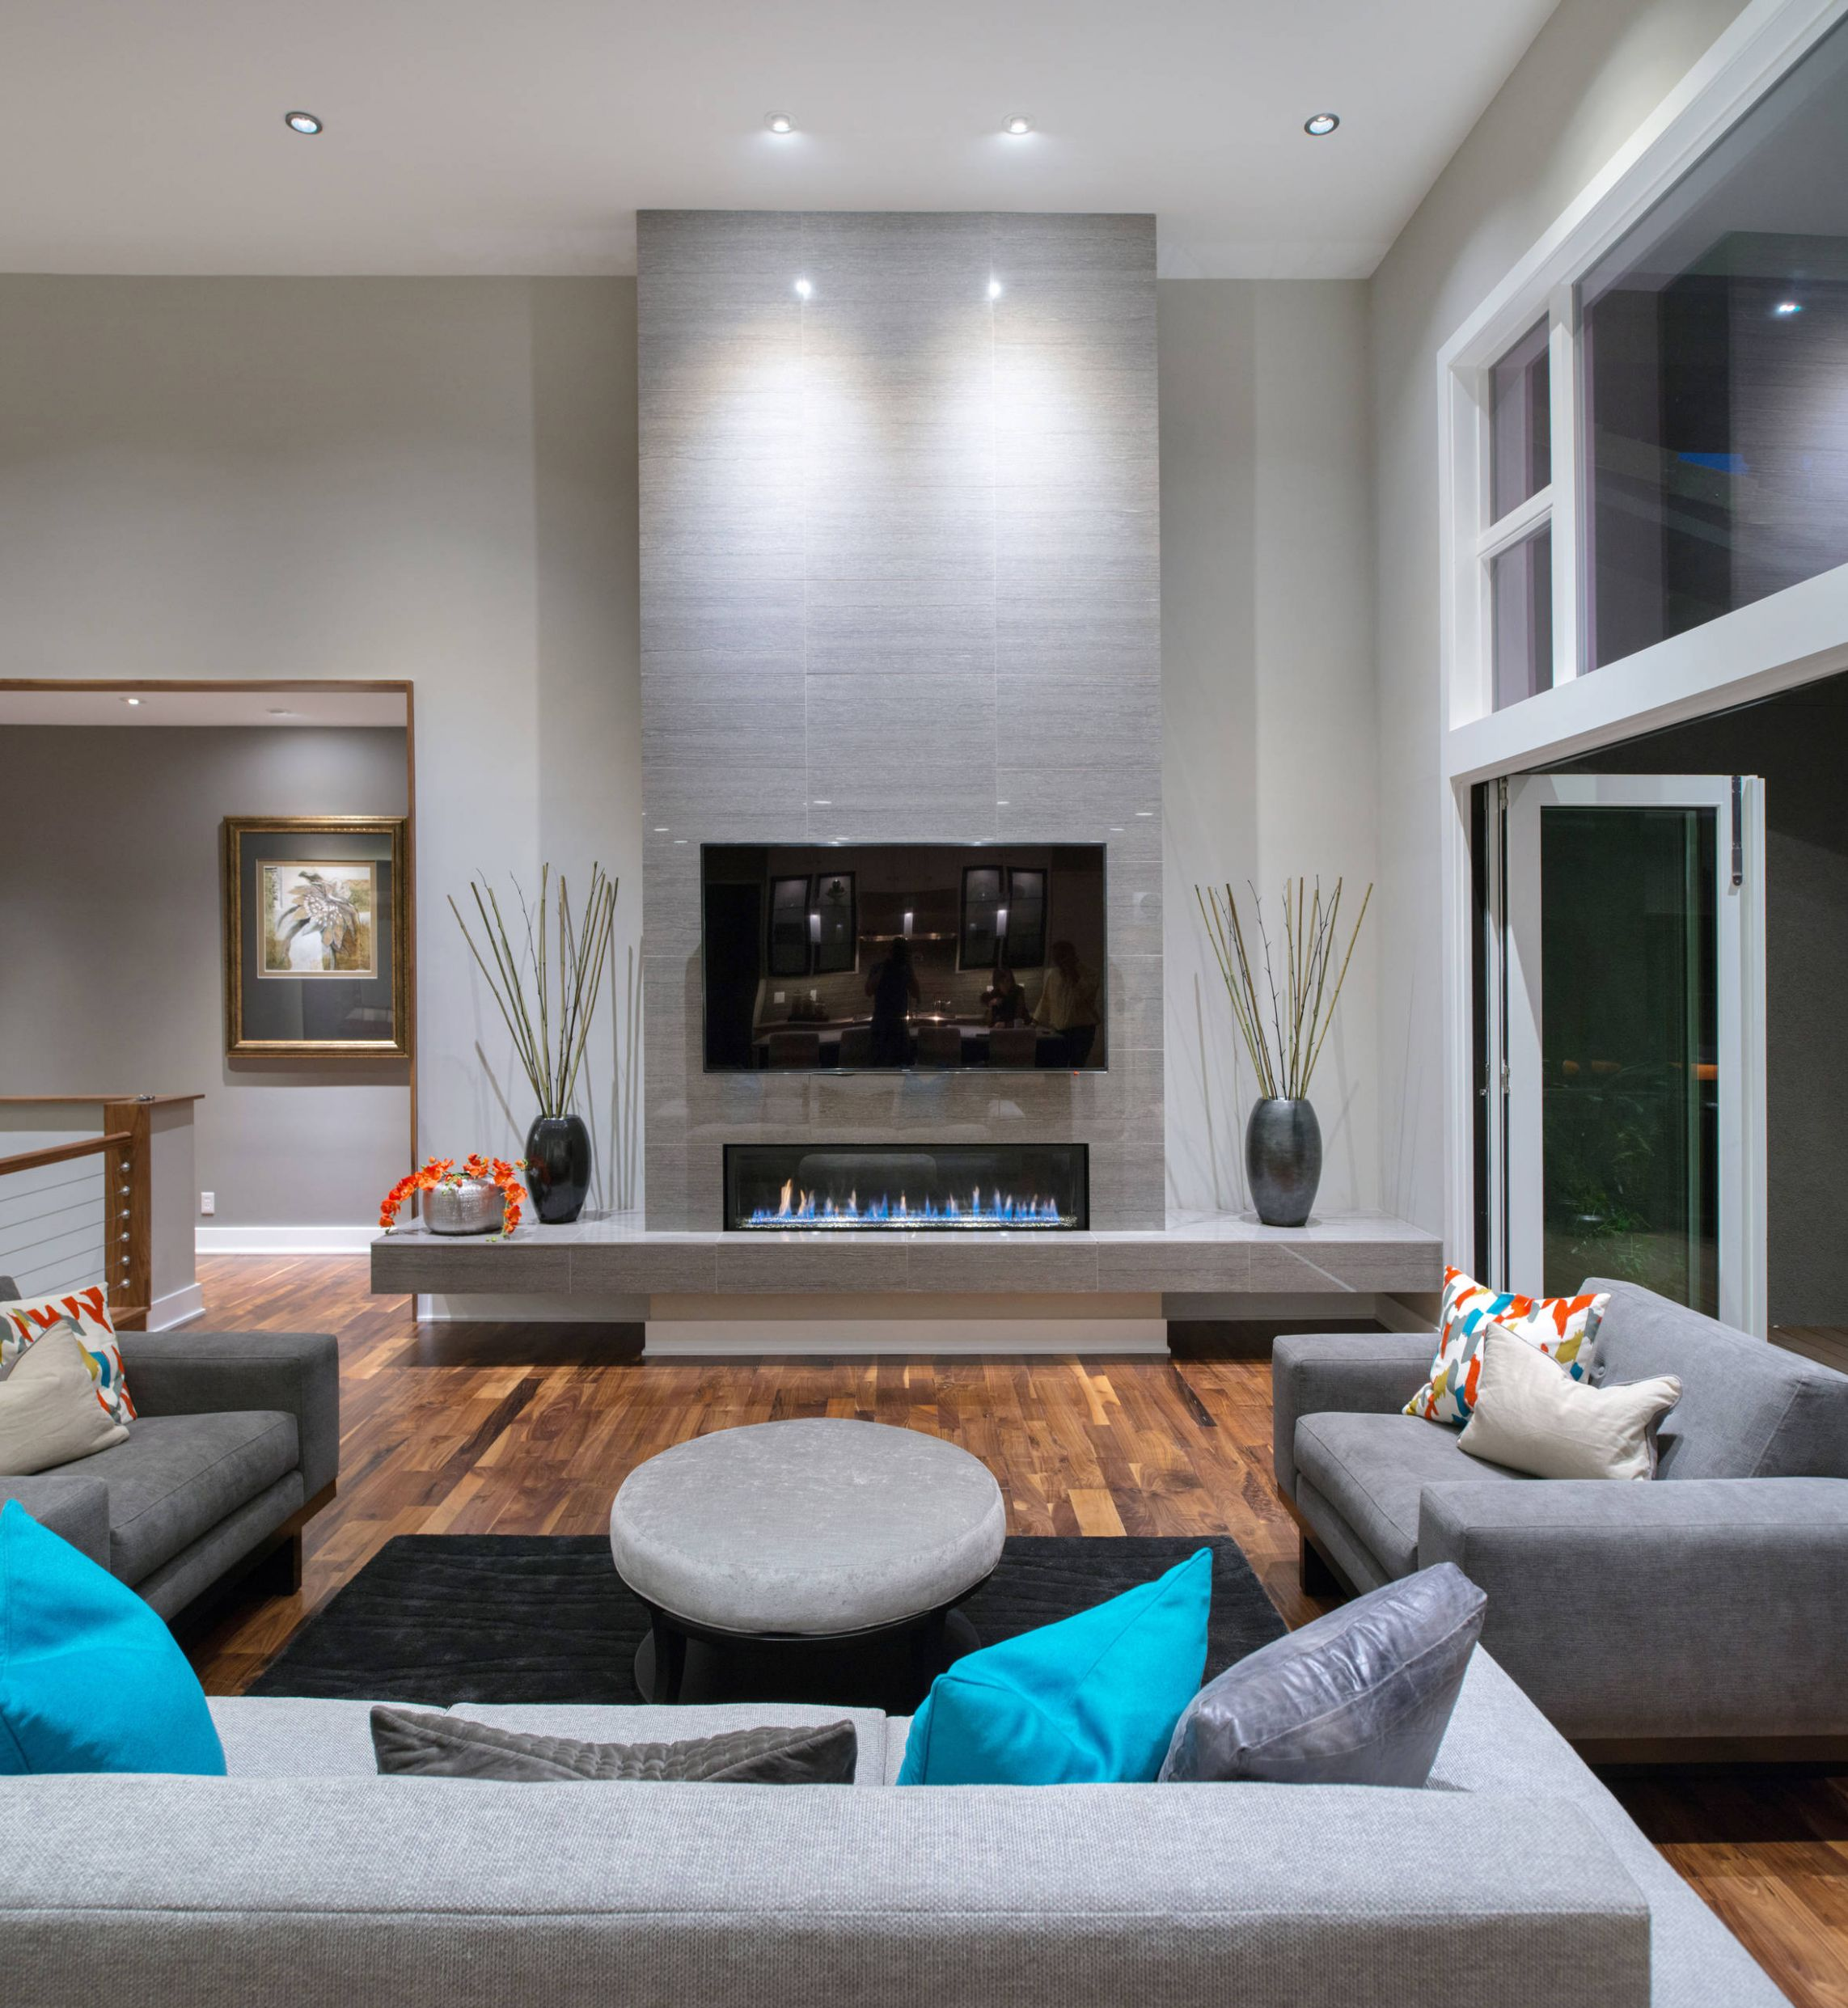 8 Beautiful Gray Living Room Pictures & Ideas | Houzz - modern dining room ideas houzz